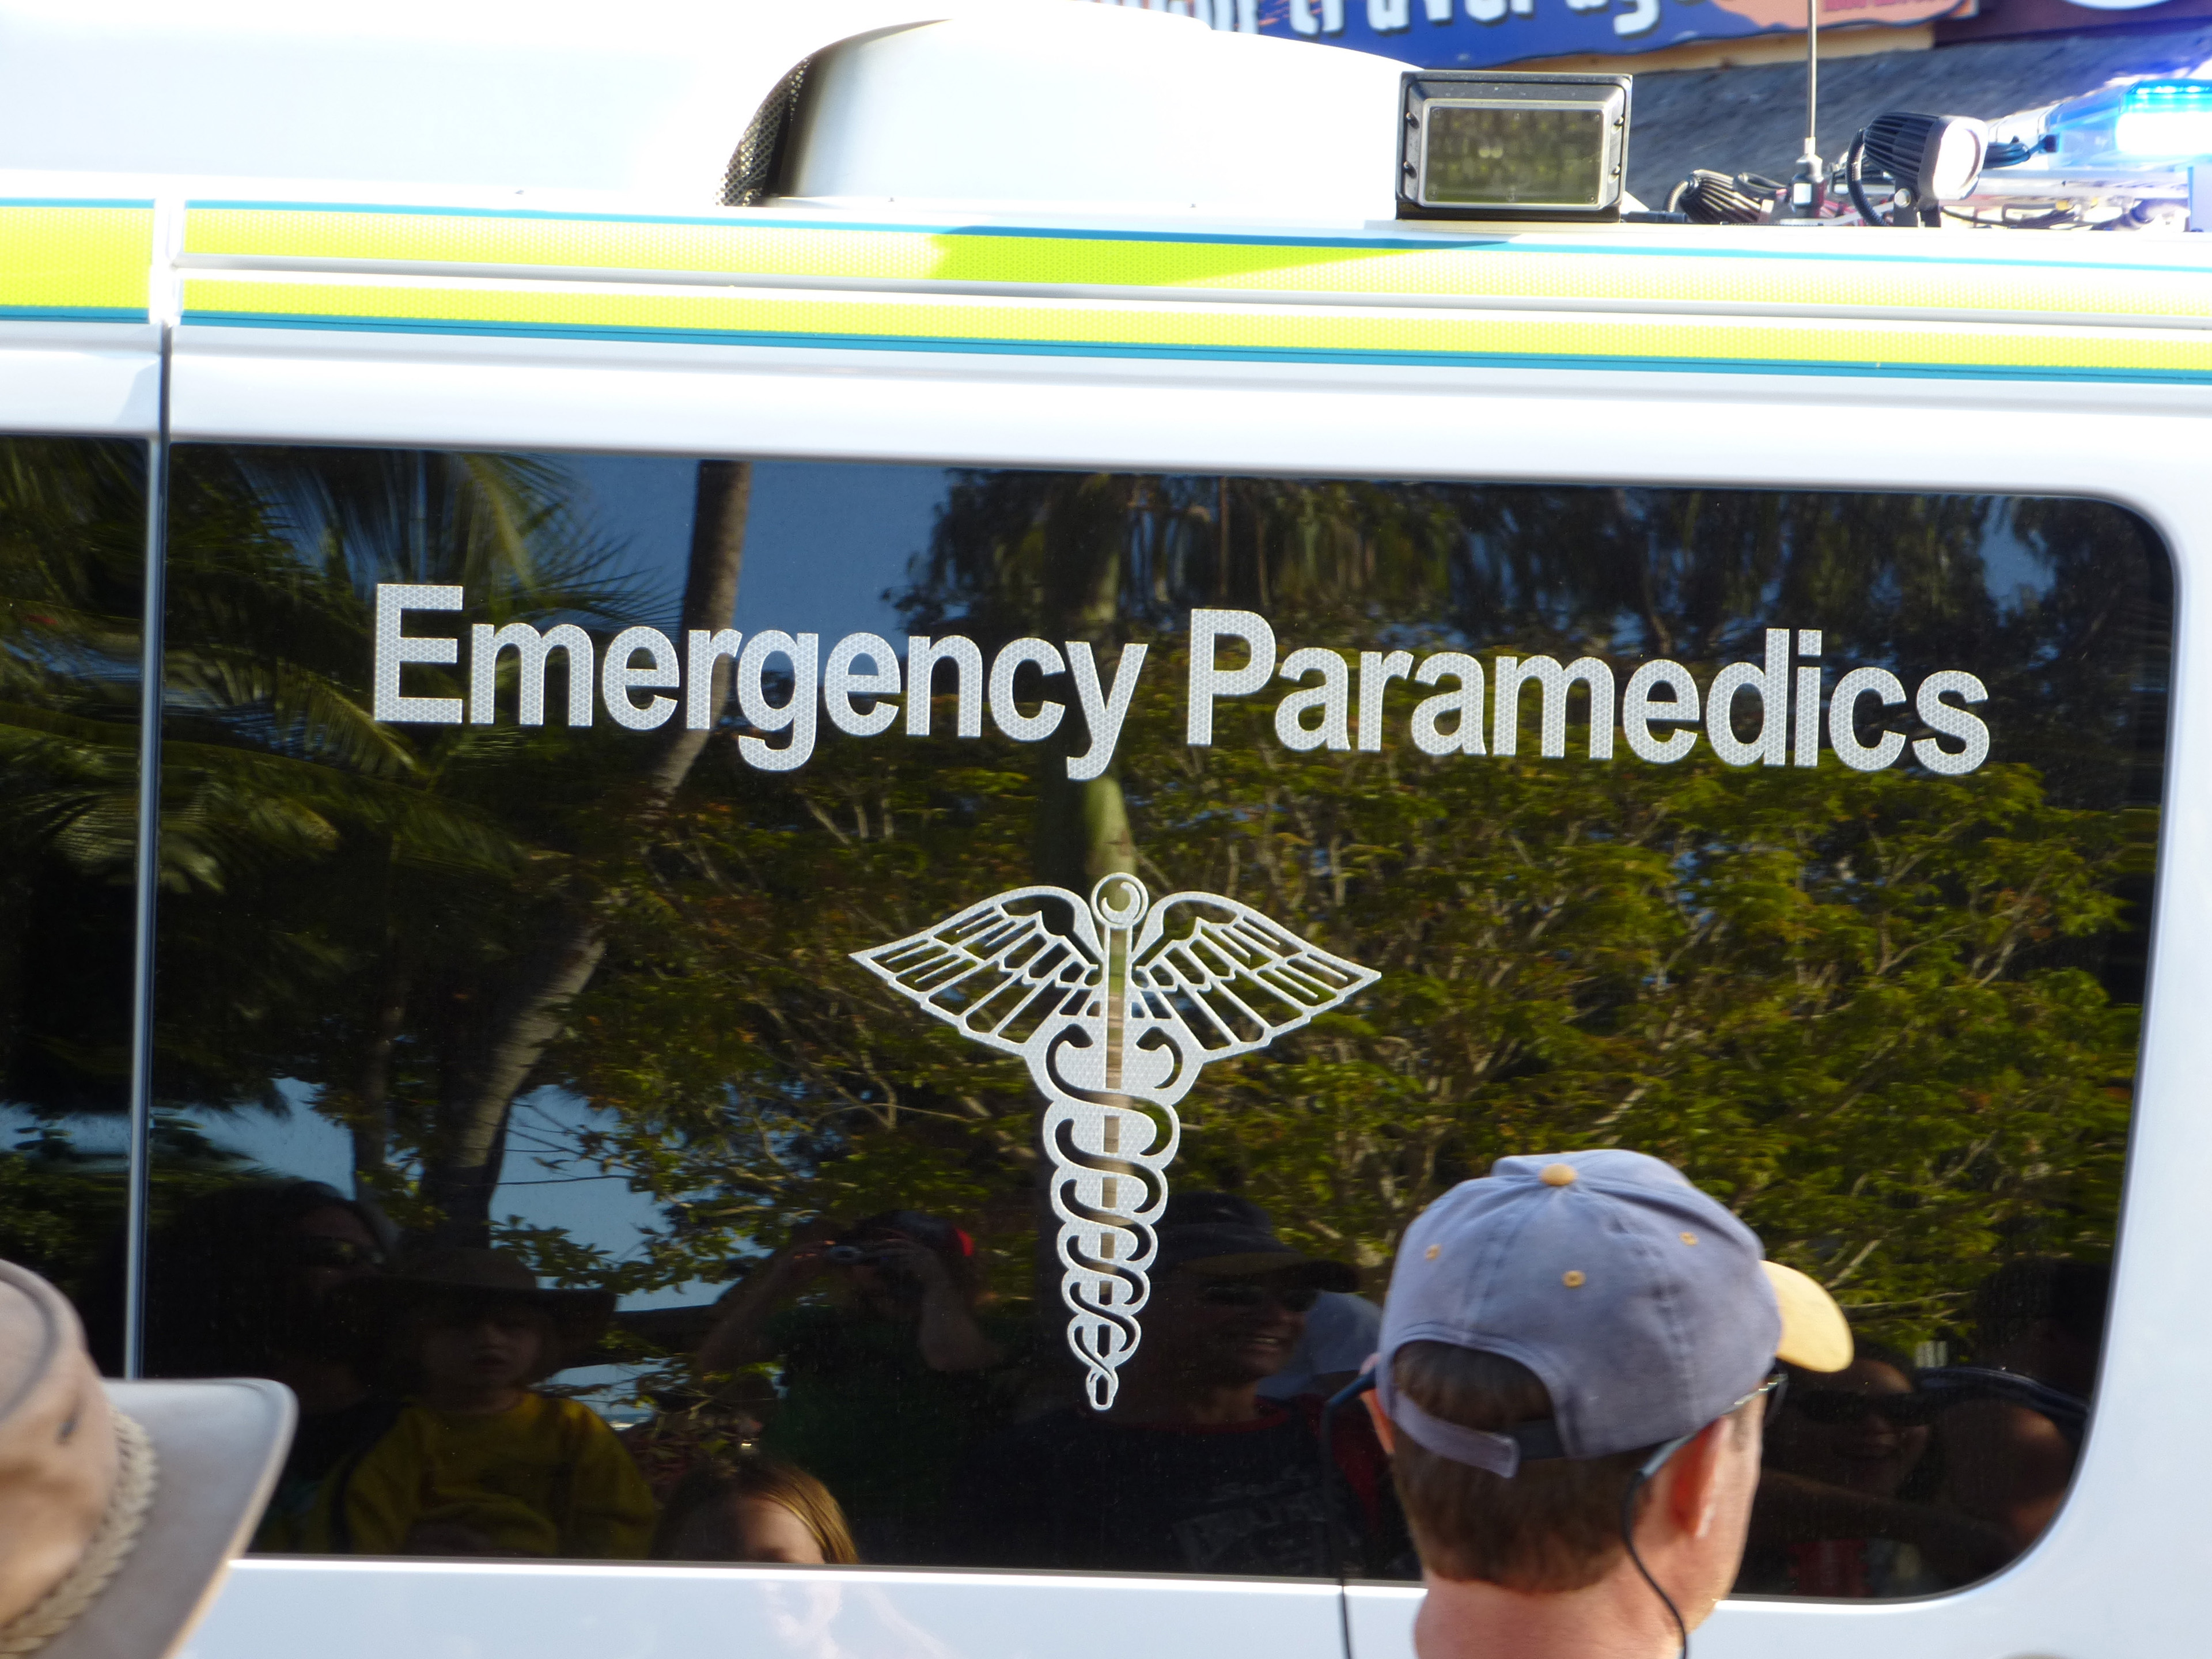 Emergency services sign for Emergency Paramedics with the medical caduceus on the window of a response vehicle with the back of peoples heads standing watching in the foreground